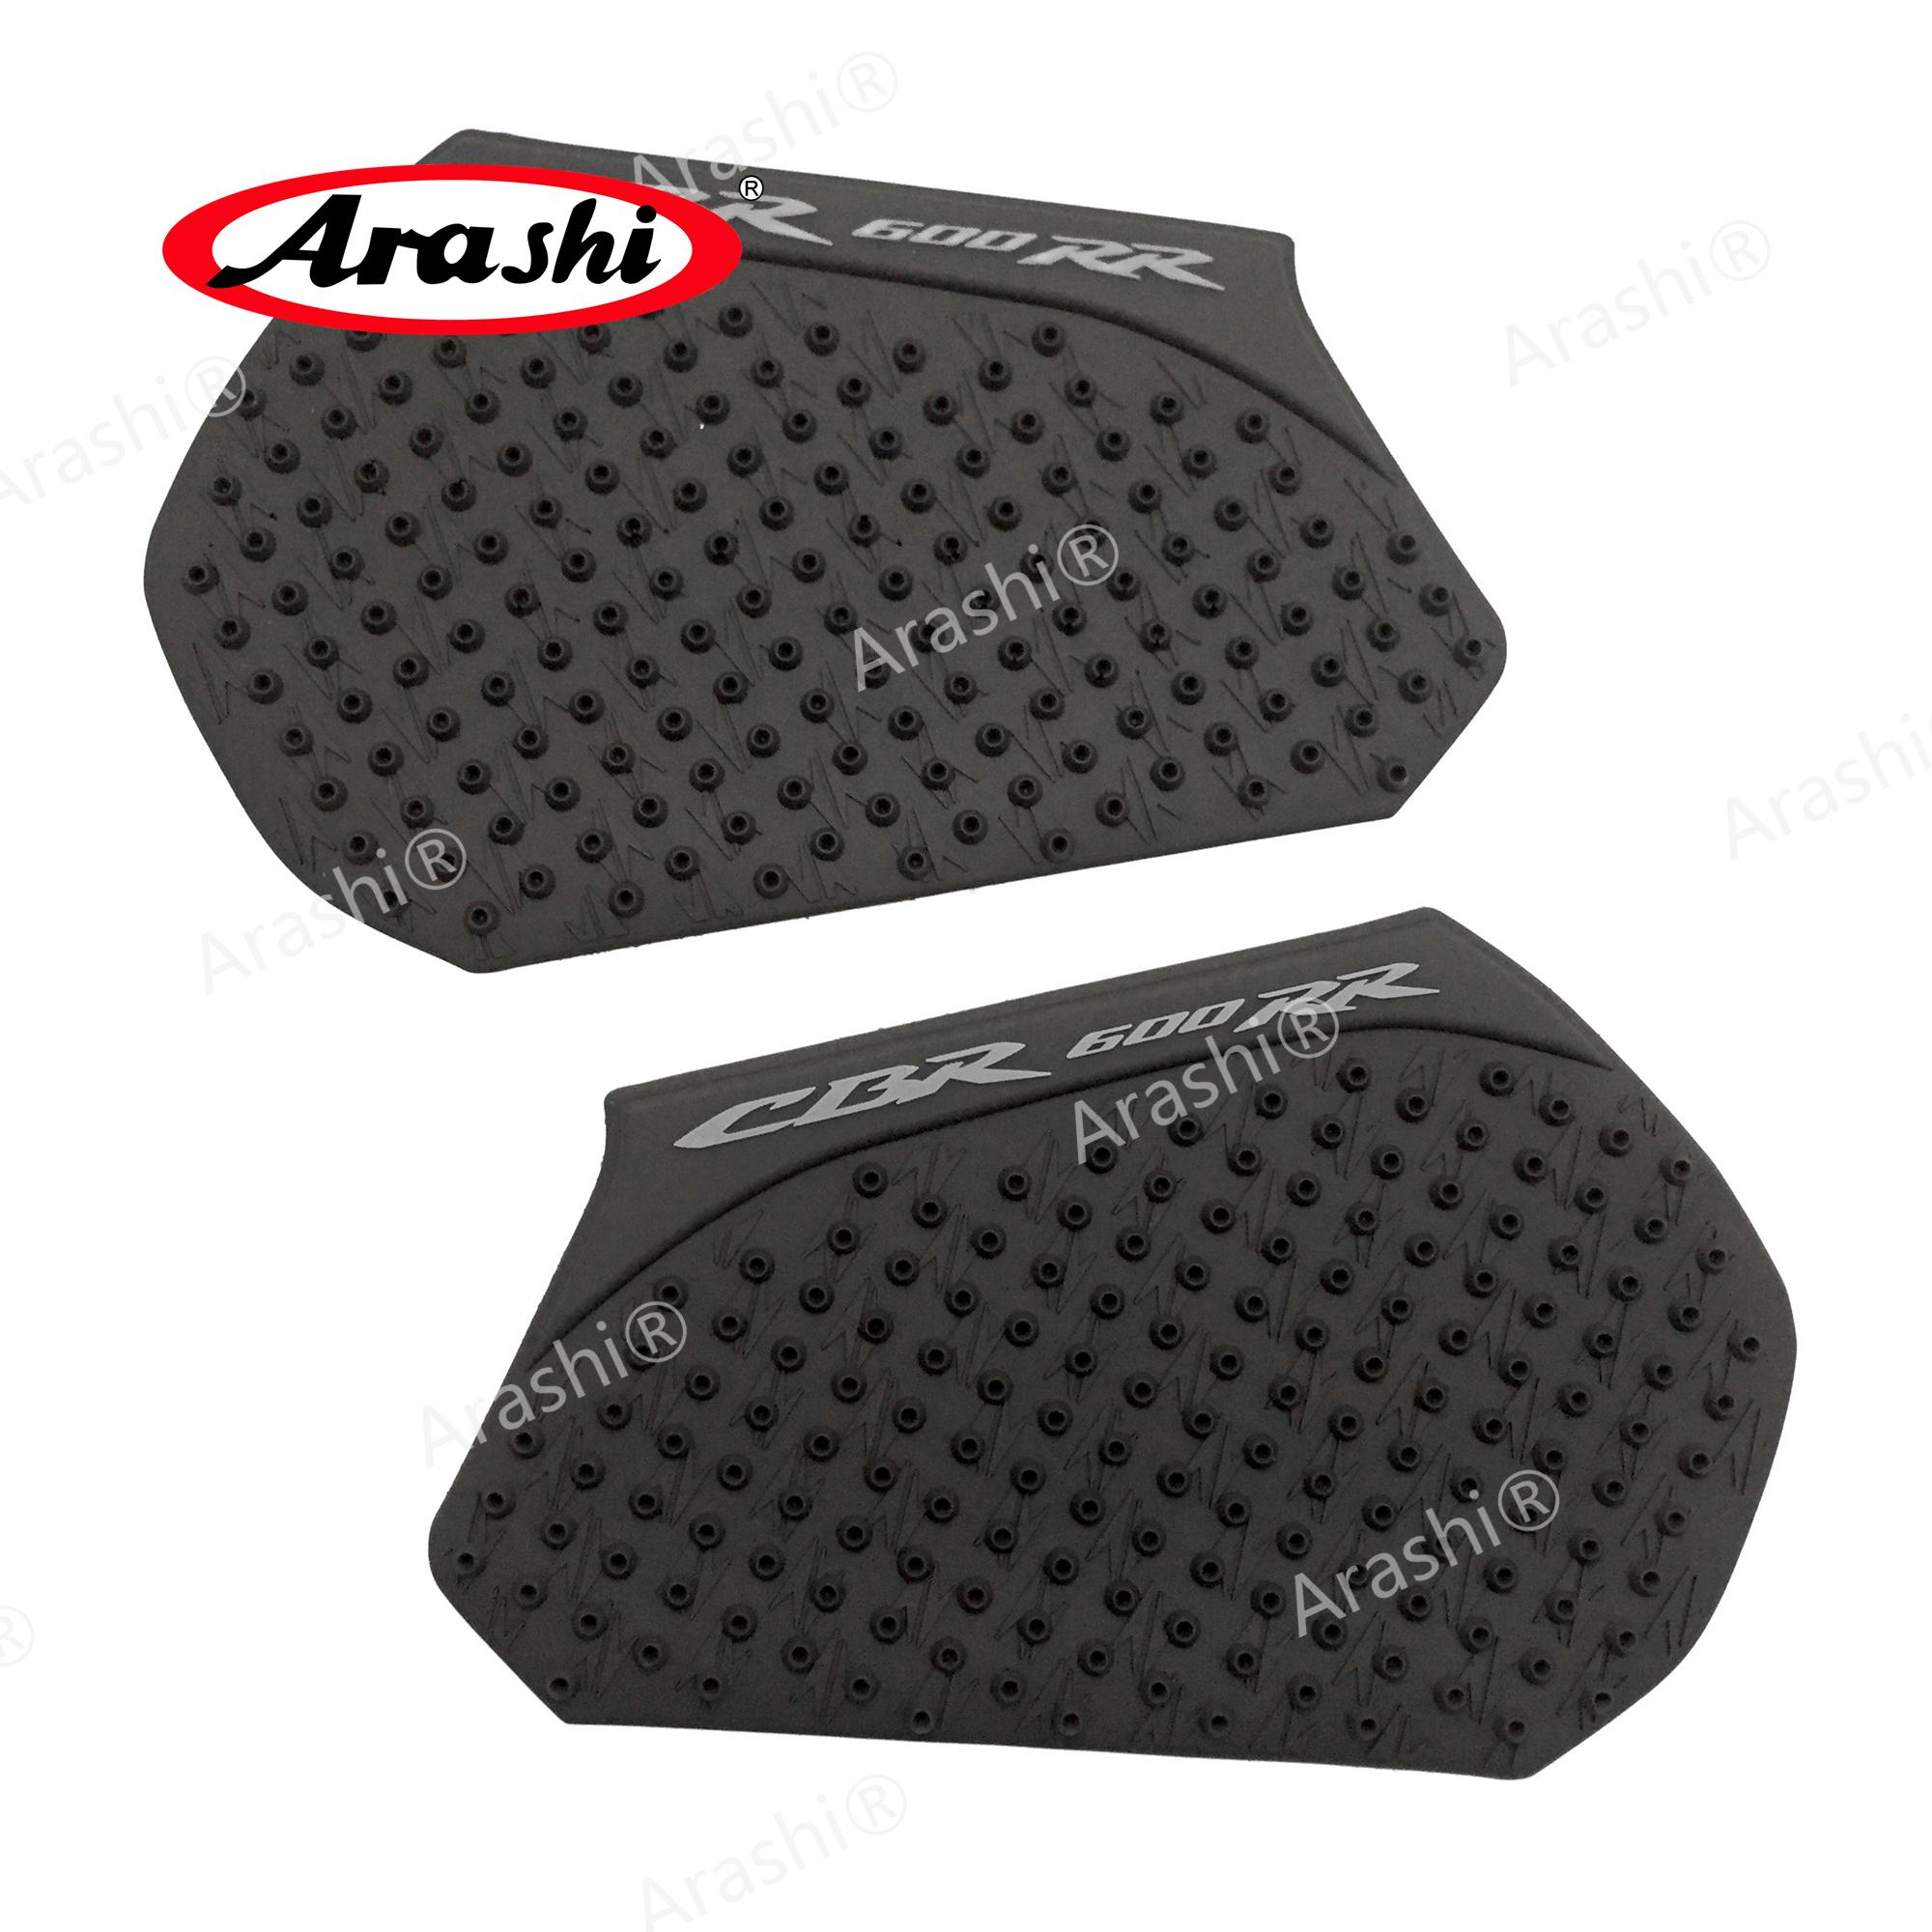 Arshi For HONDA CBR600RR 2013-2017 Tank Pad Protector Sticker Decal Soft Side Pad Gas Fuel Knee Decals CBR 600 RR 2013 14 15 16 17